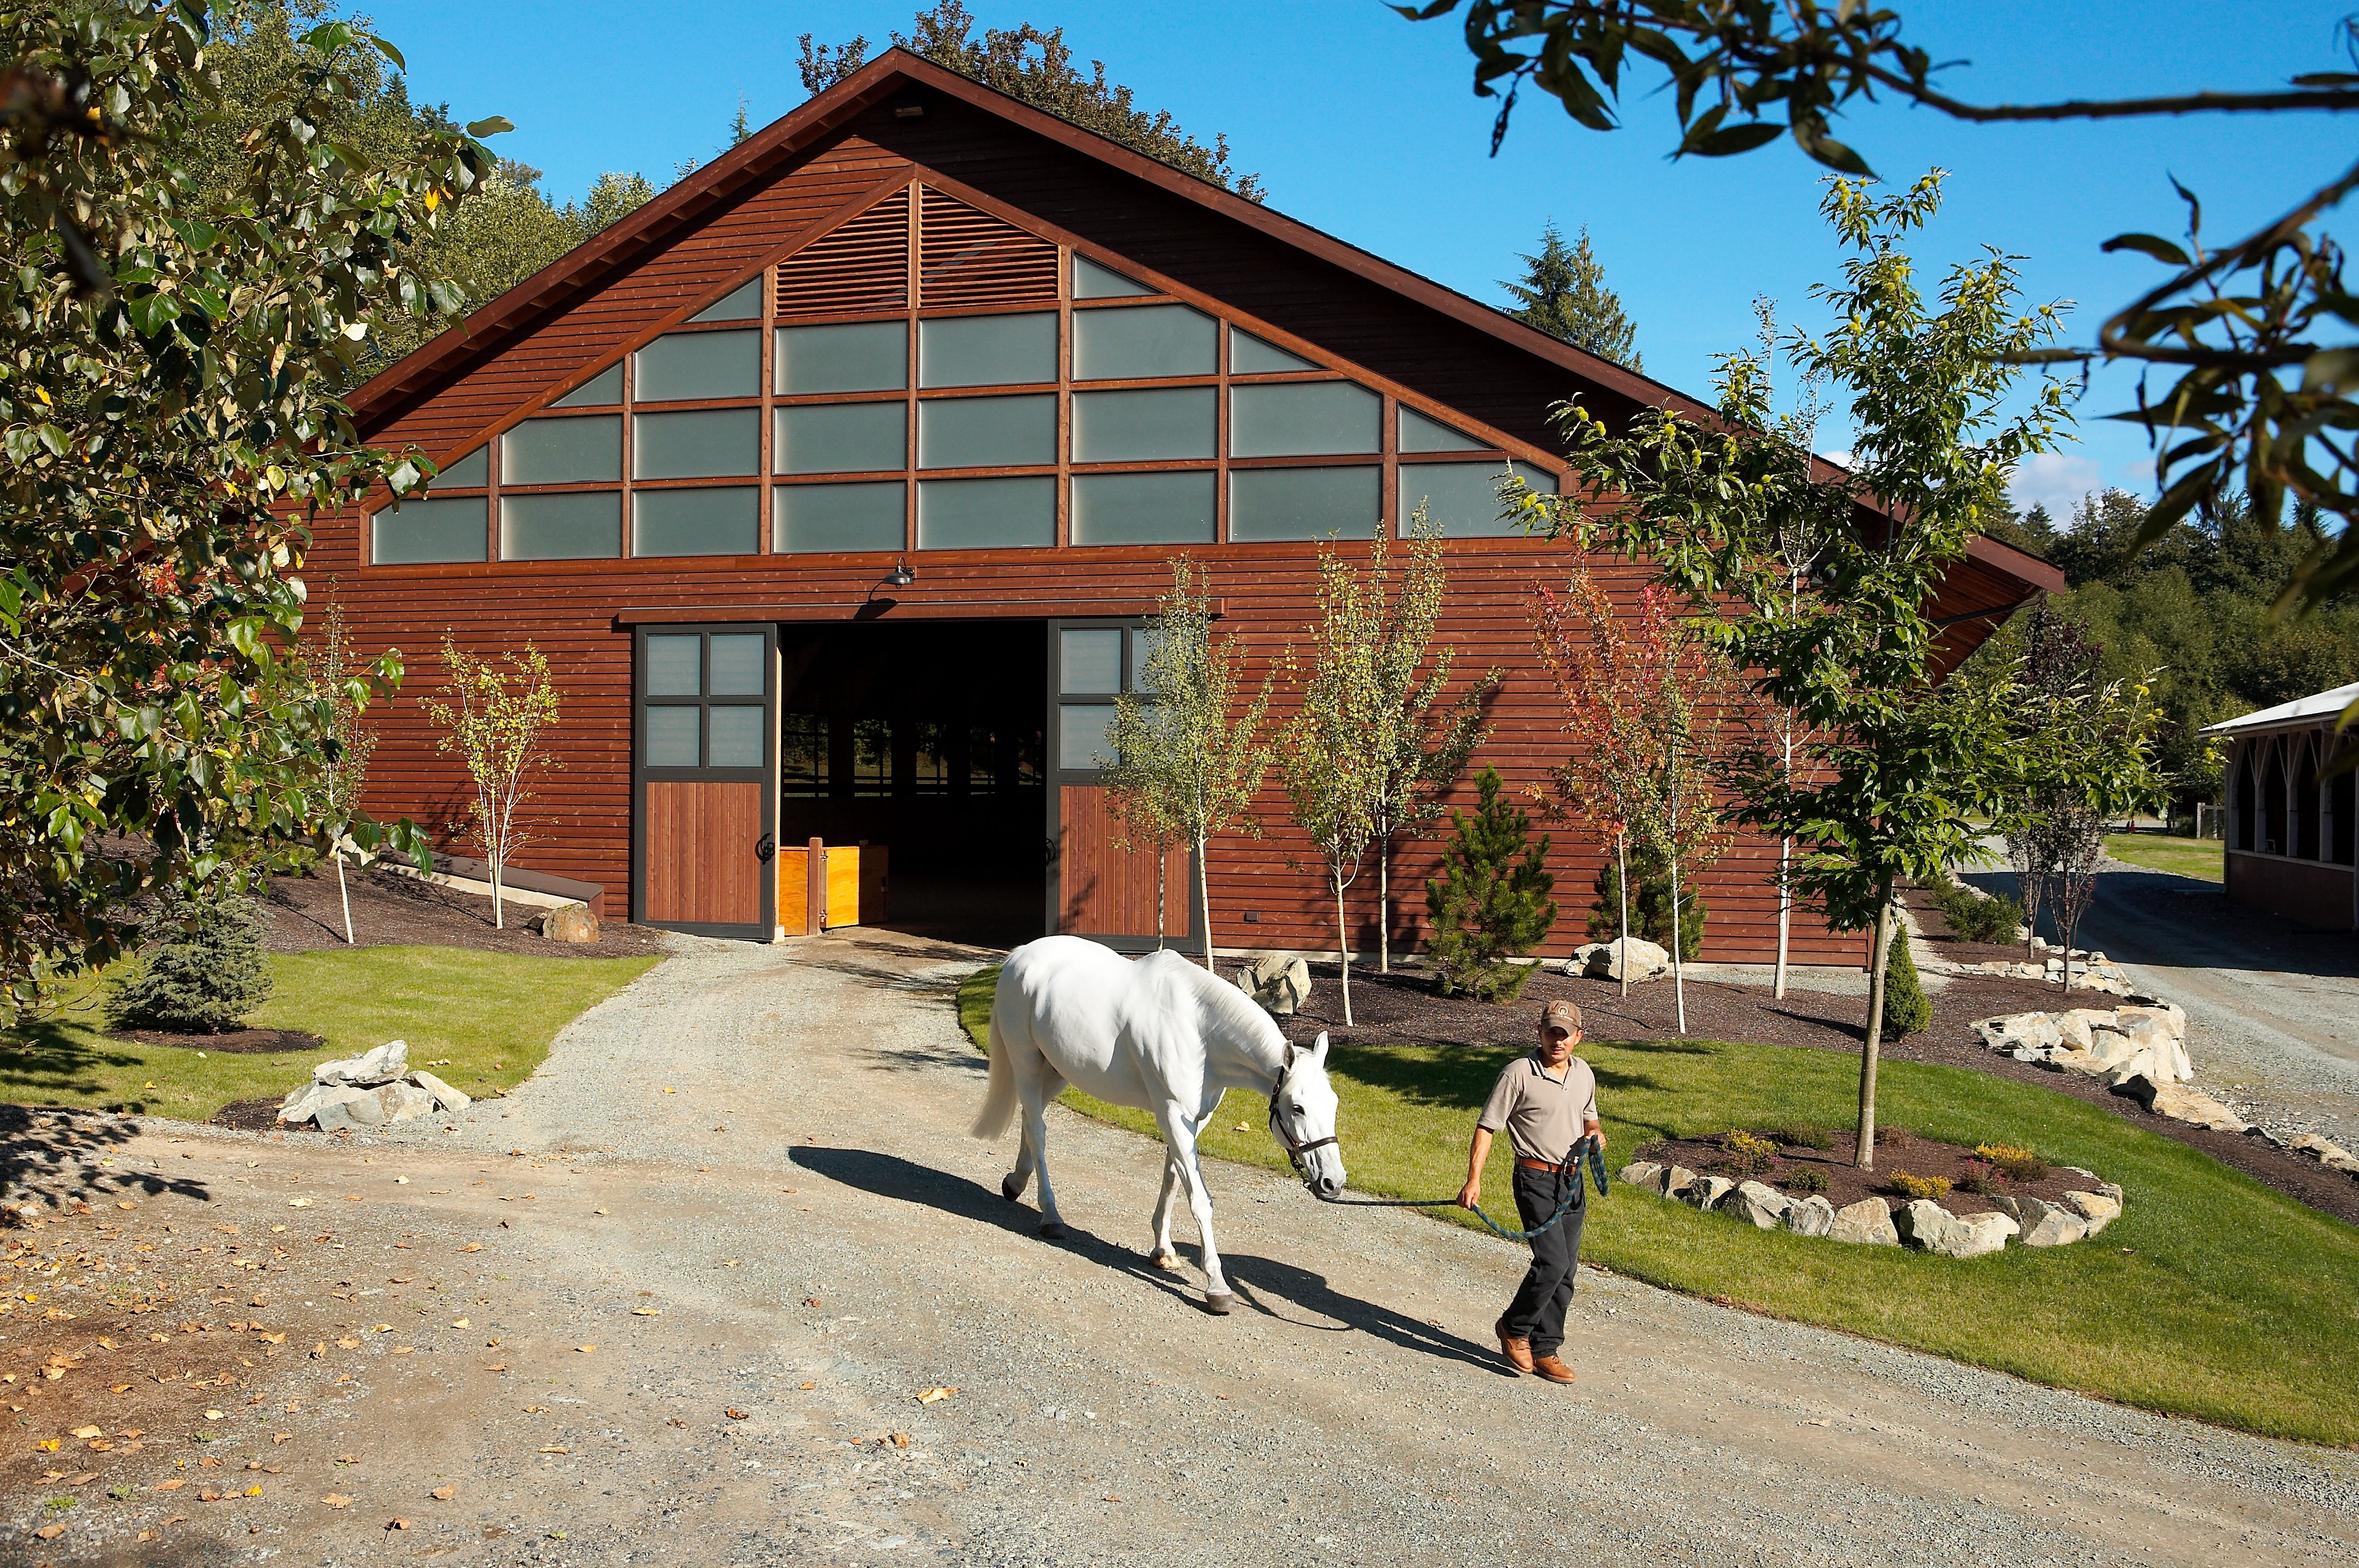 Equestrian Archives - Page 2 of 5 - Blackburn Architects, P.C. ...